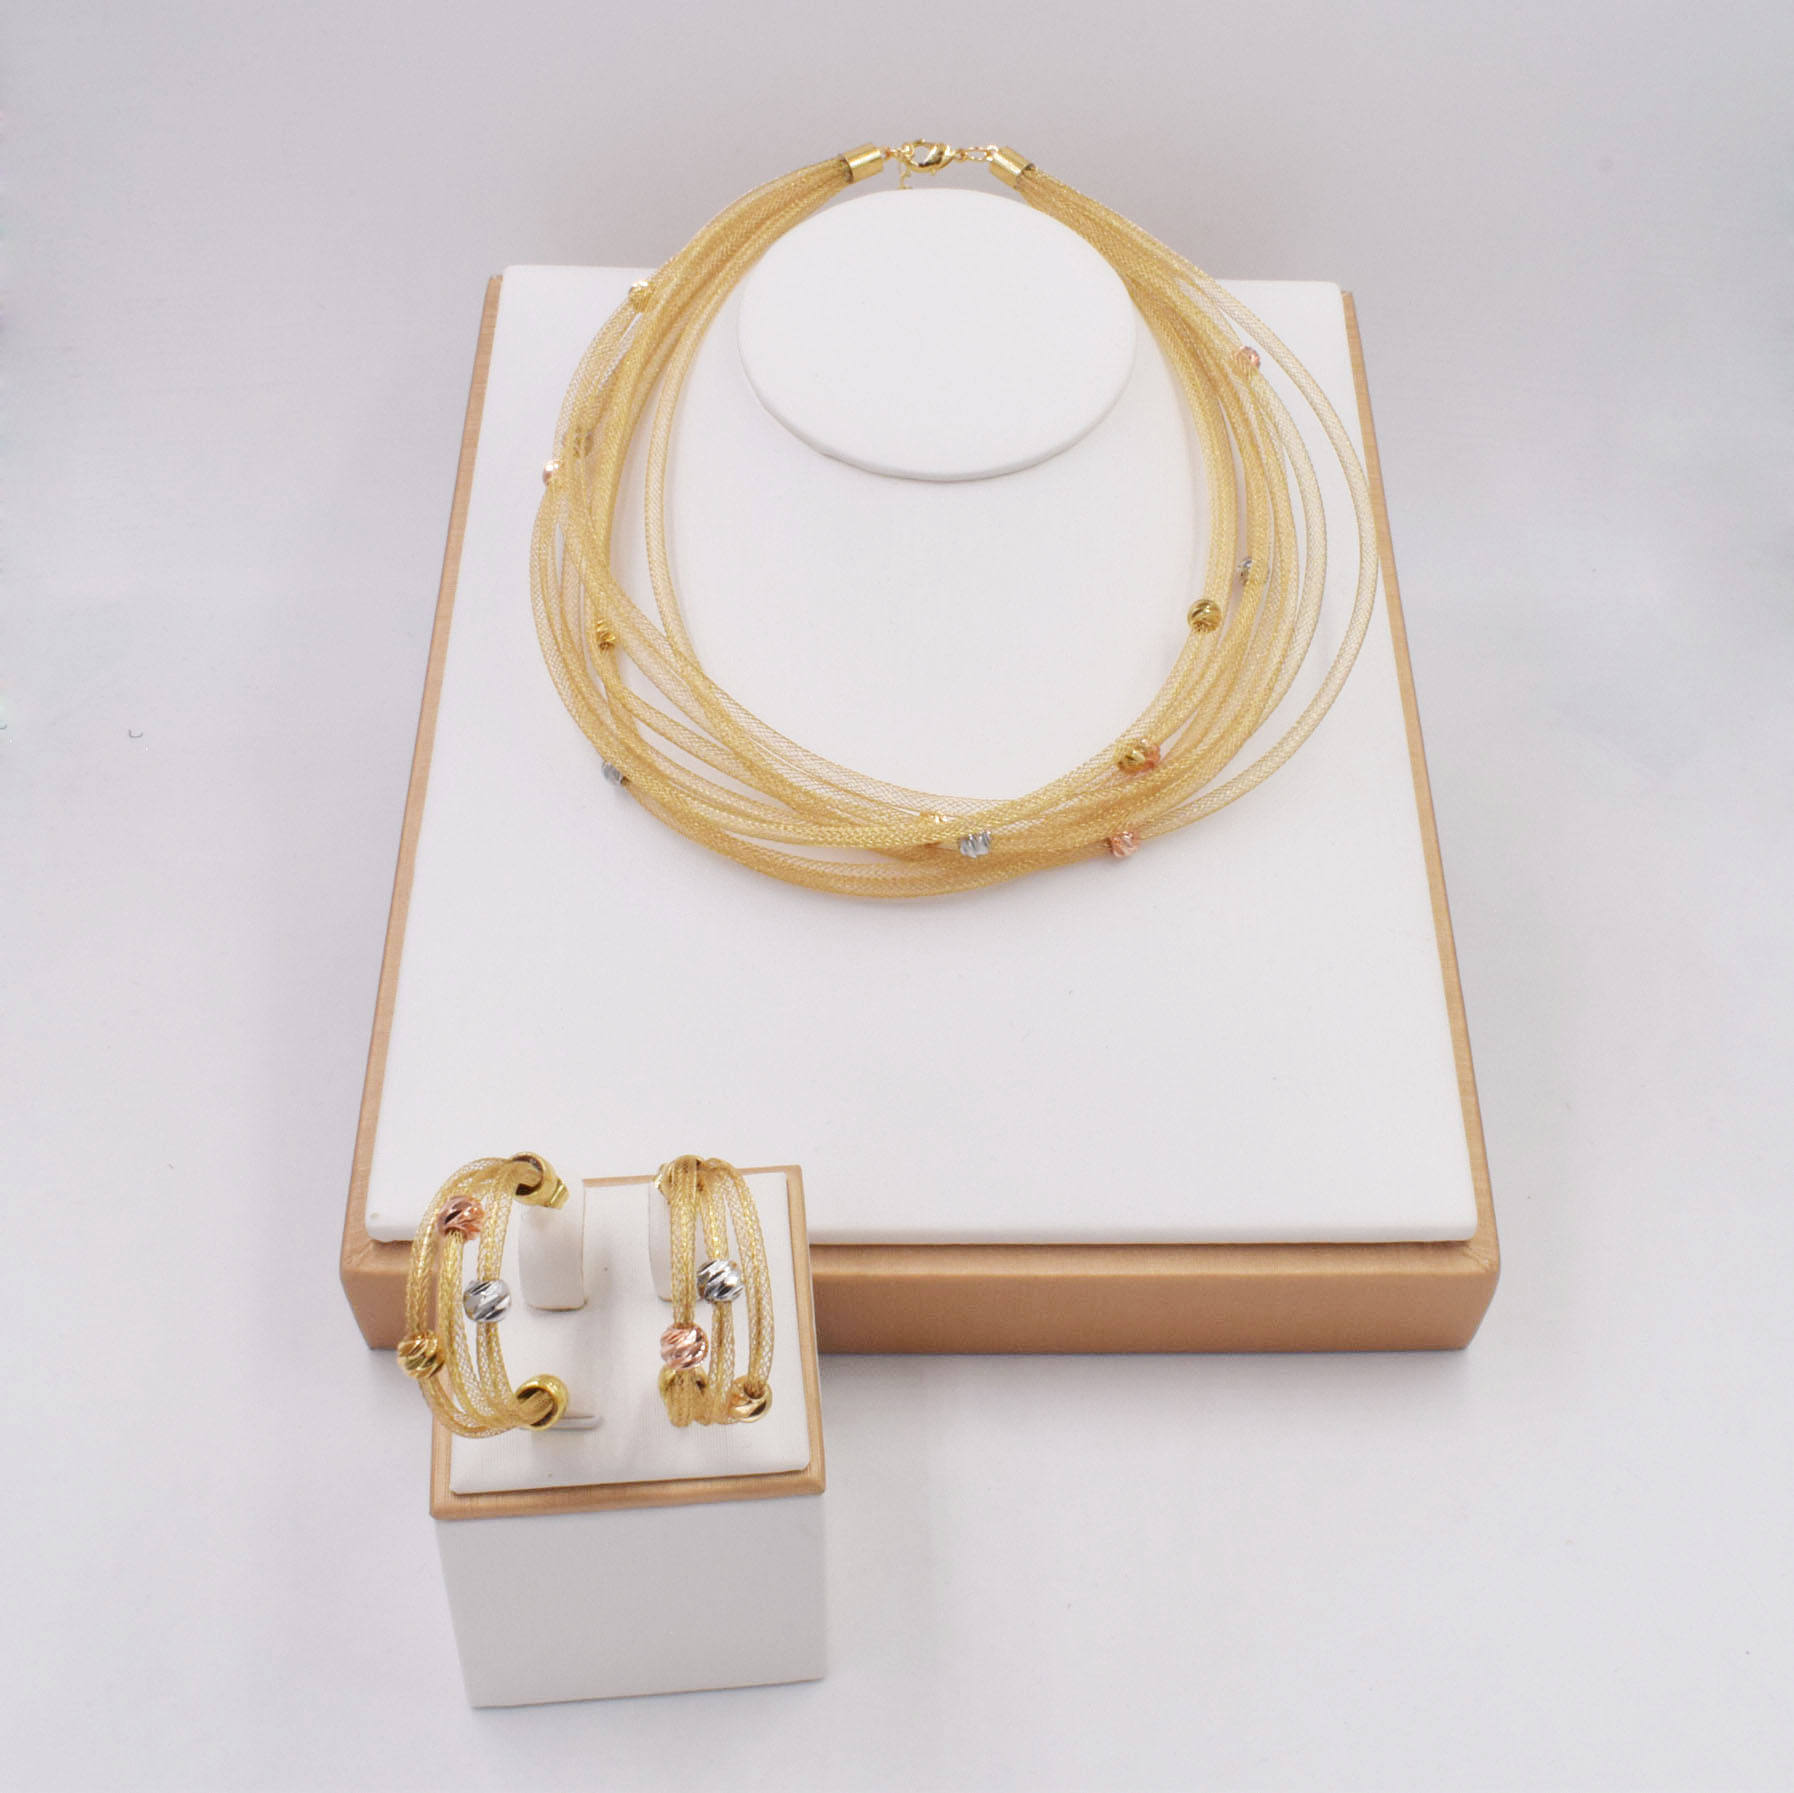 18K Italy Dubai Necklace New Design Bridal Fashion Jewellery Sets Ball Wedding Jewelry Sets NT0061